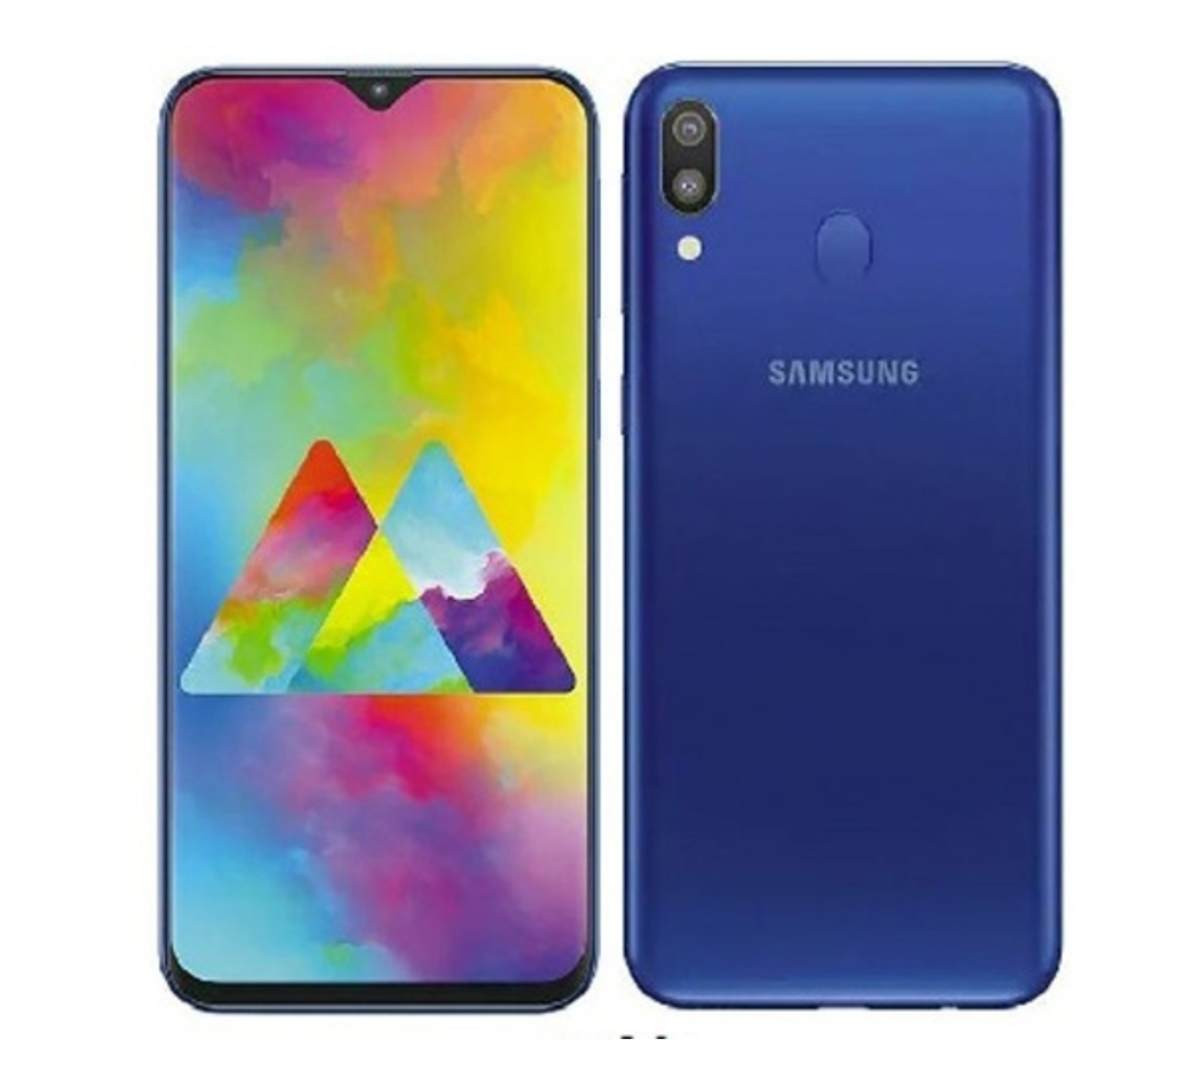 Samsung Galaxy M20, price, specs and image in Nigeria, Samsung m20 price in Nigeria, specs and price of Samsung Galaxy M20 in Nigeria, Samsung Galaxy M20 price in Nigeria, Samsung m20 price and specs